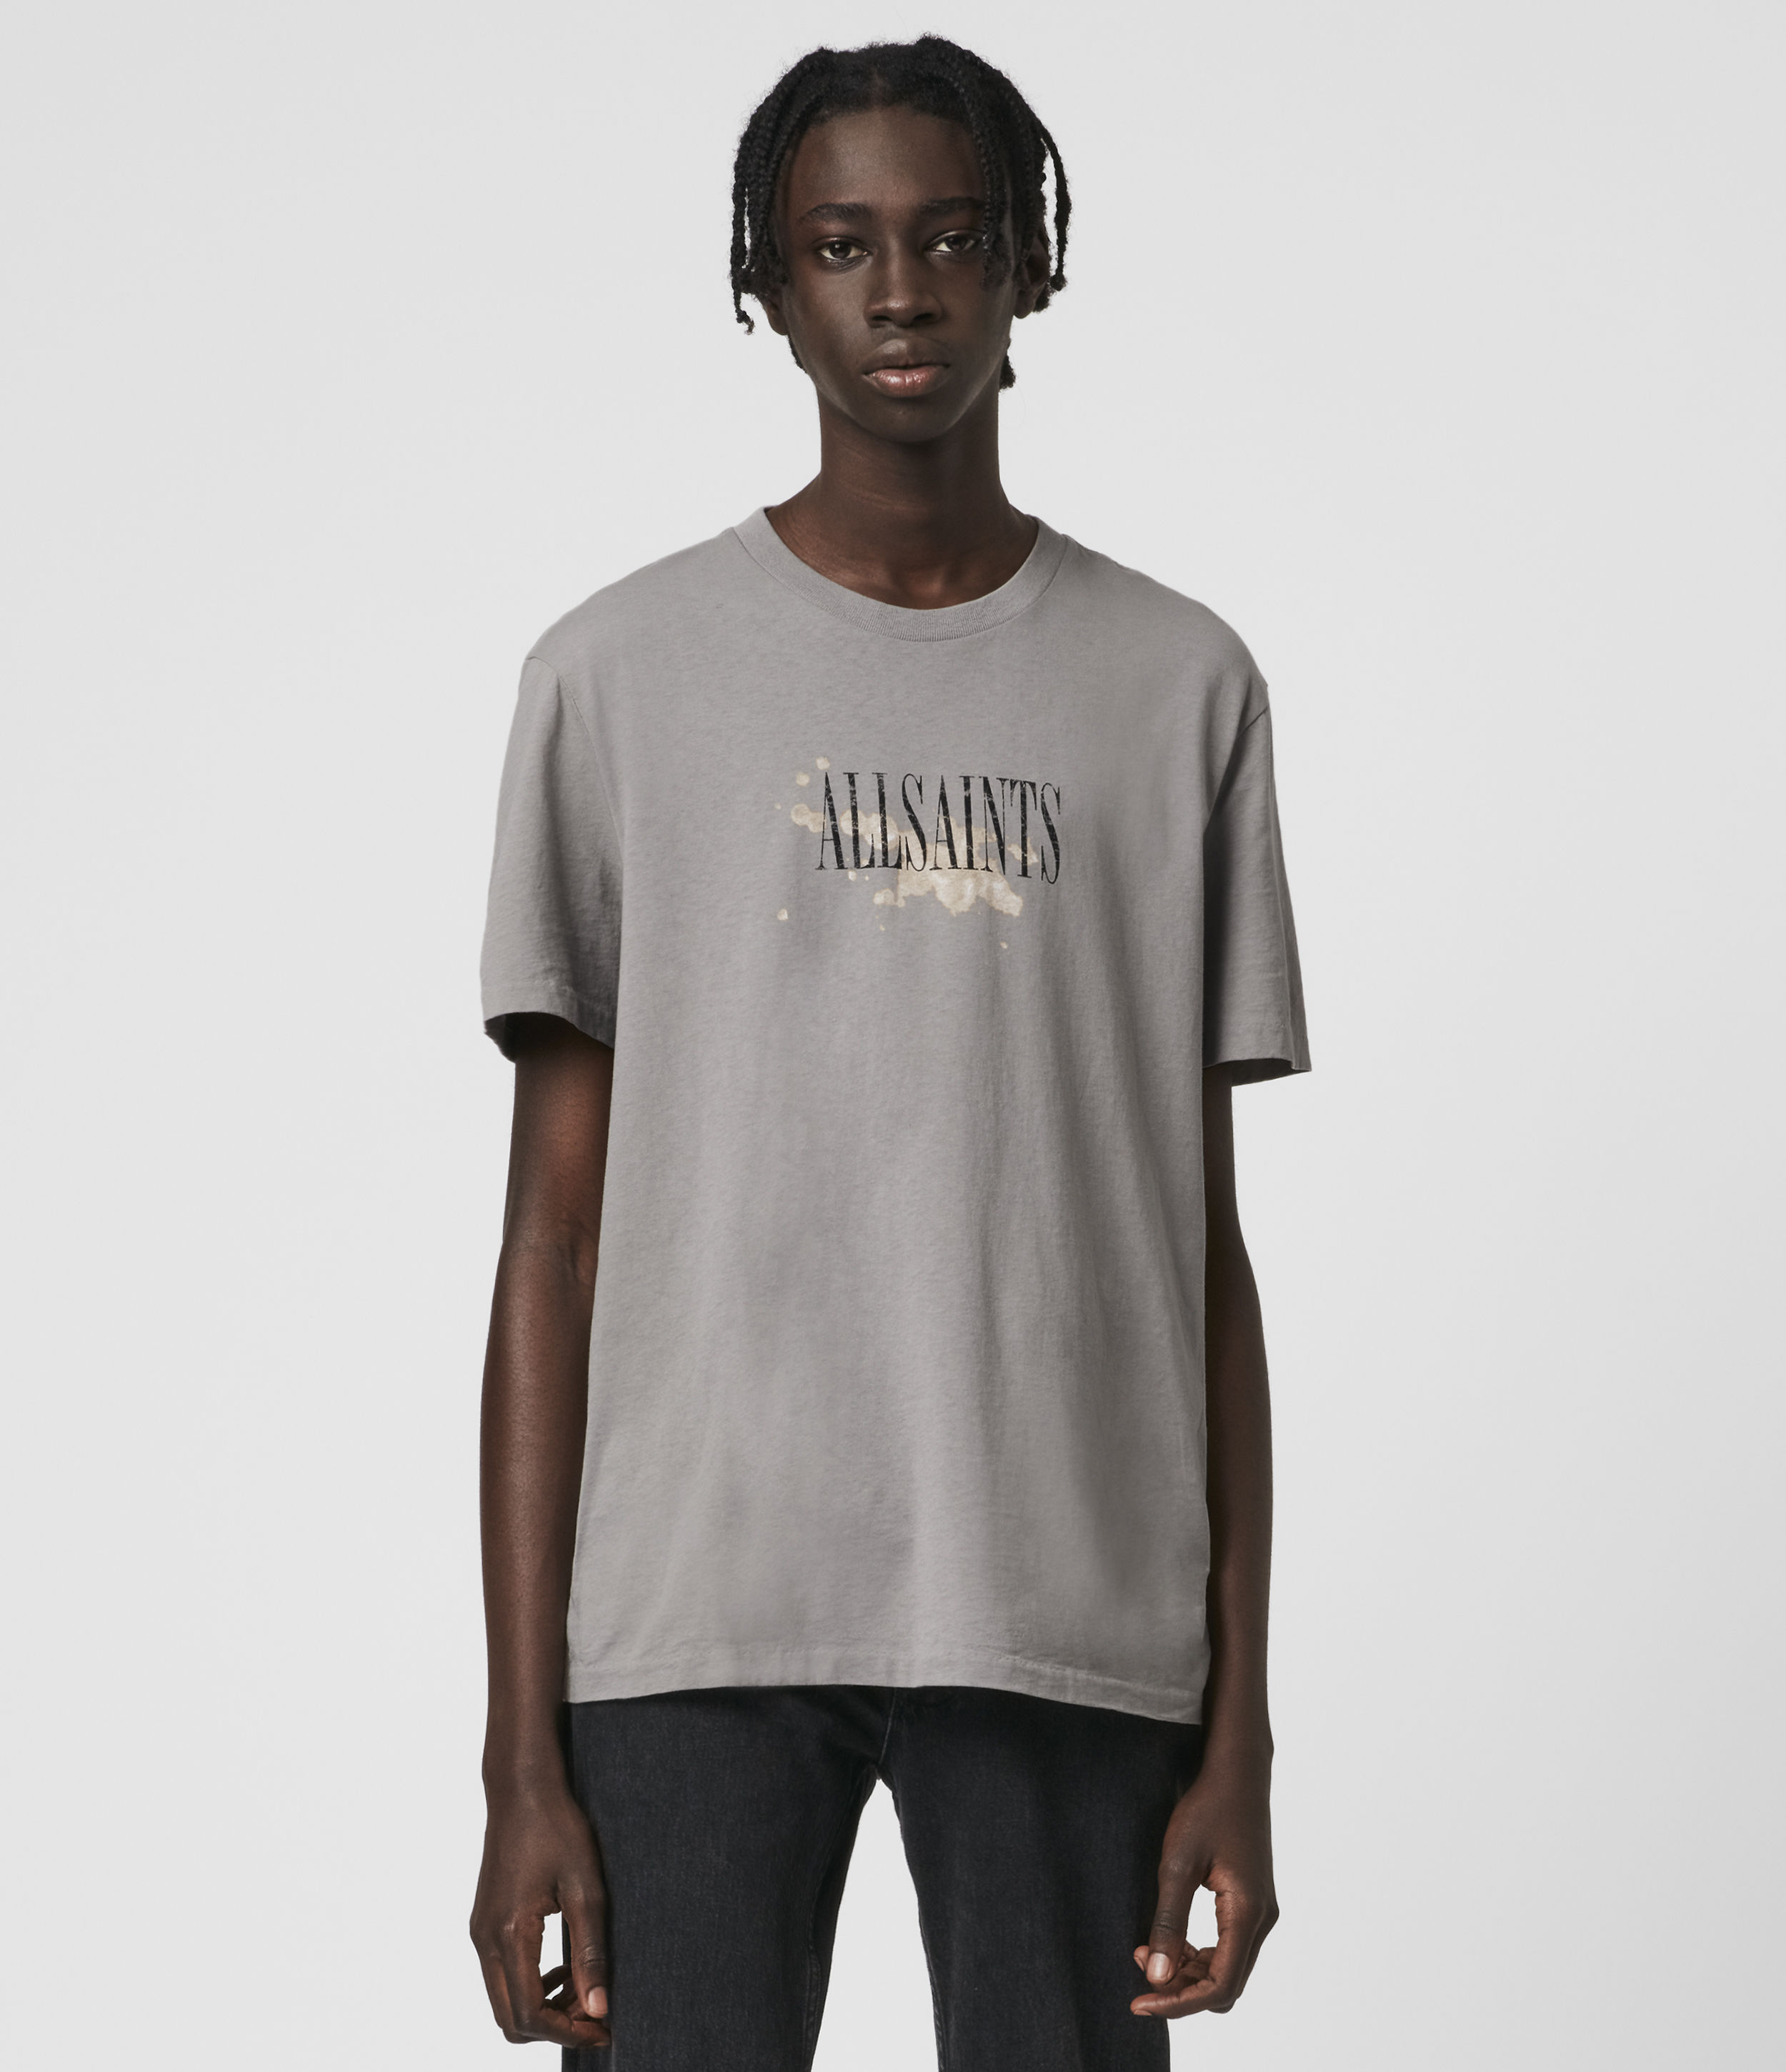 AllSaints Bleach Splash Crew T-Shirt